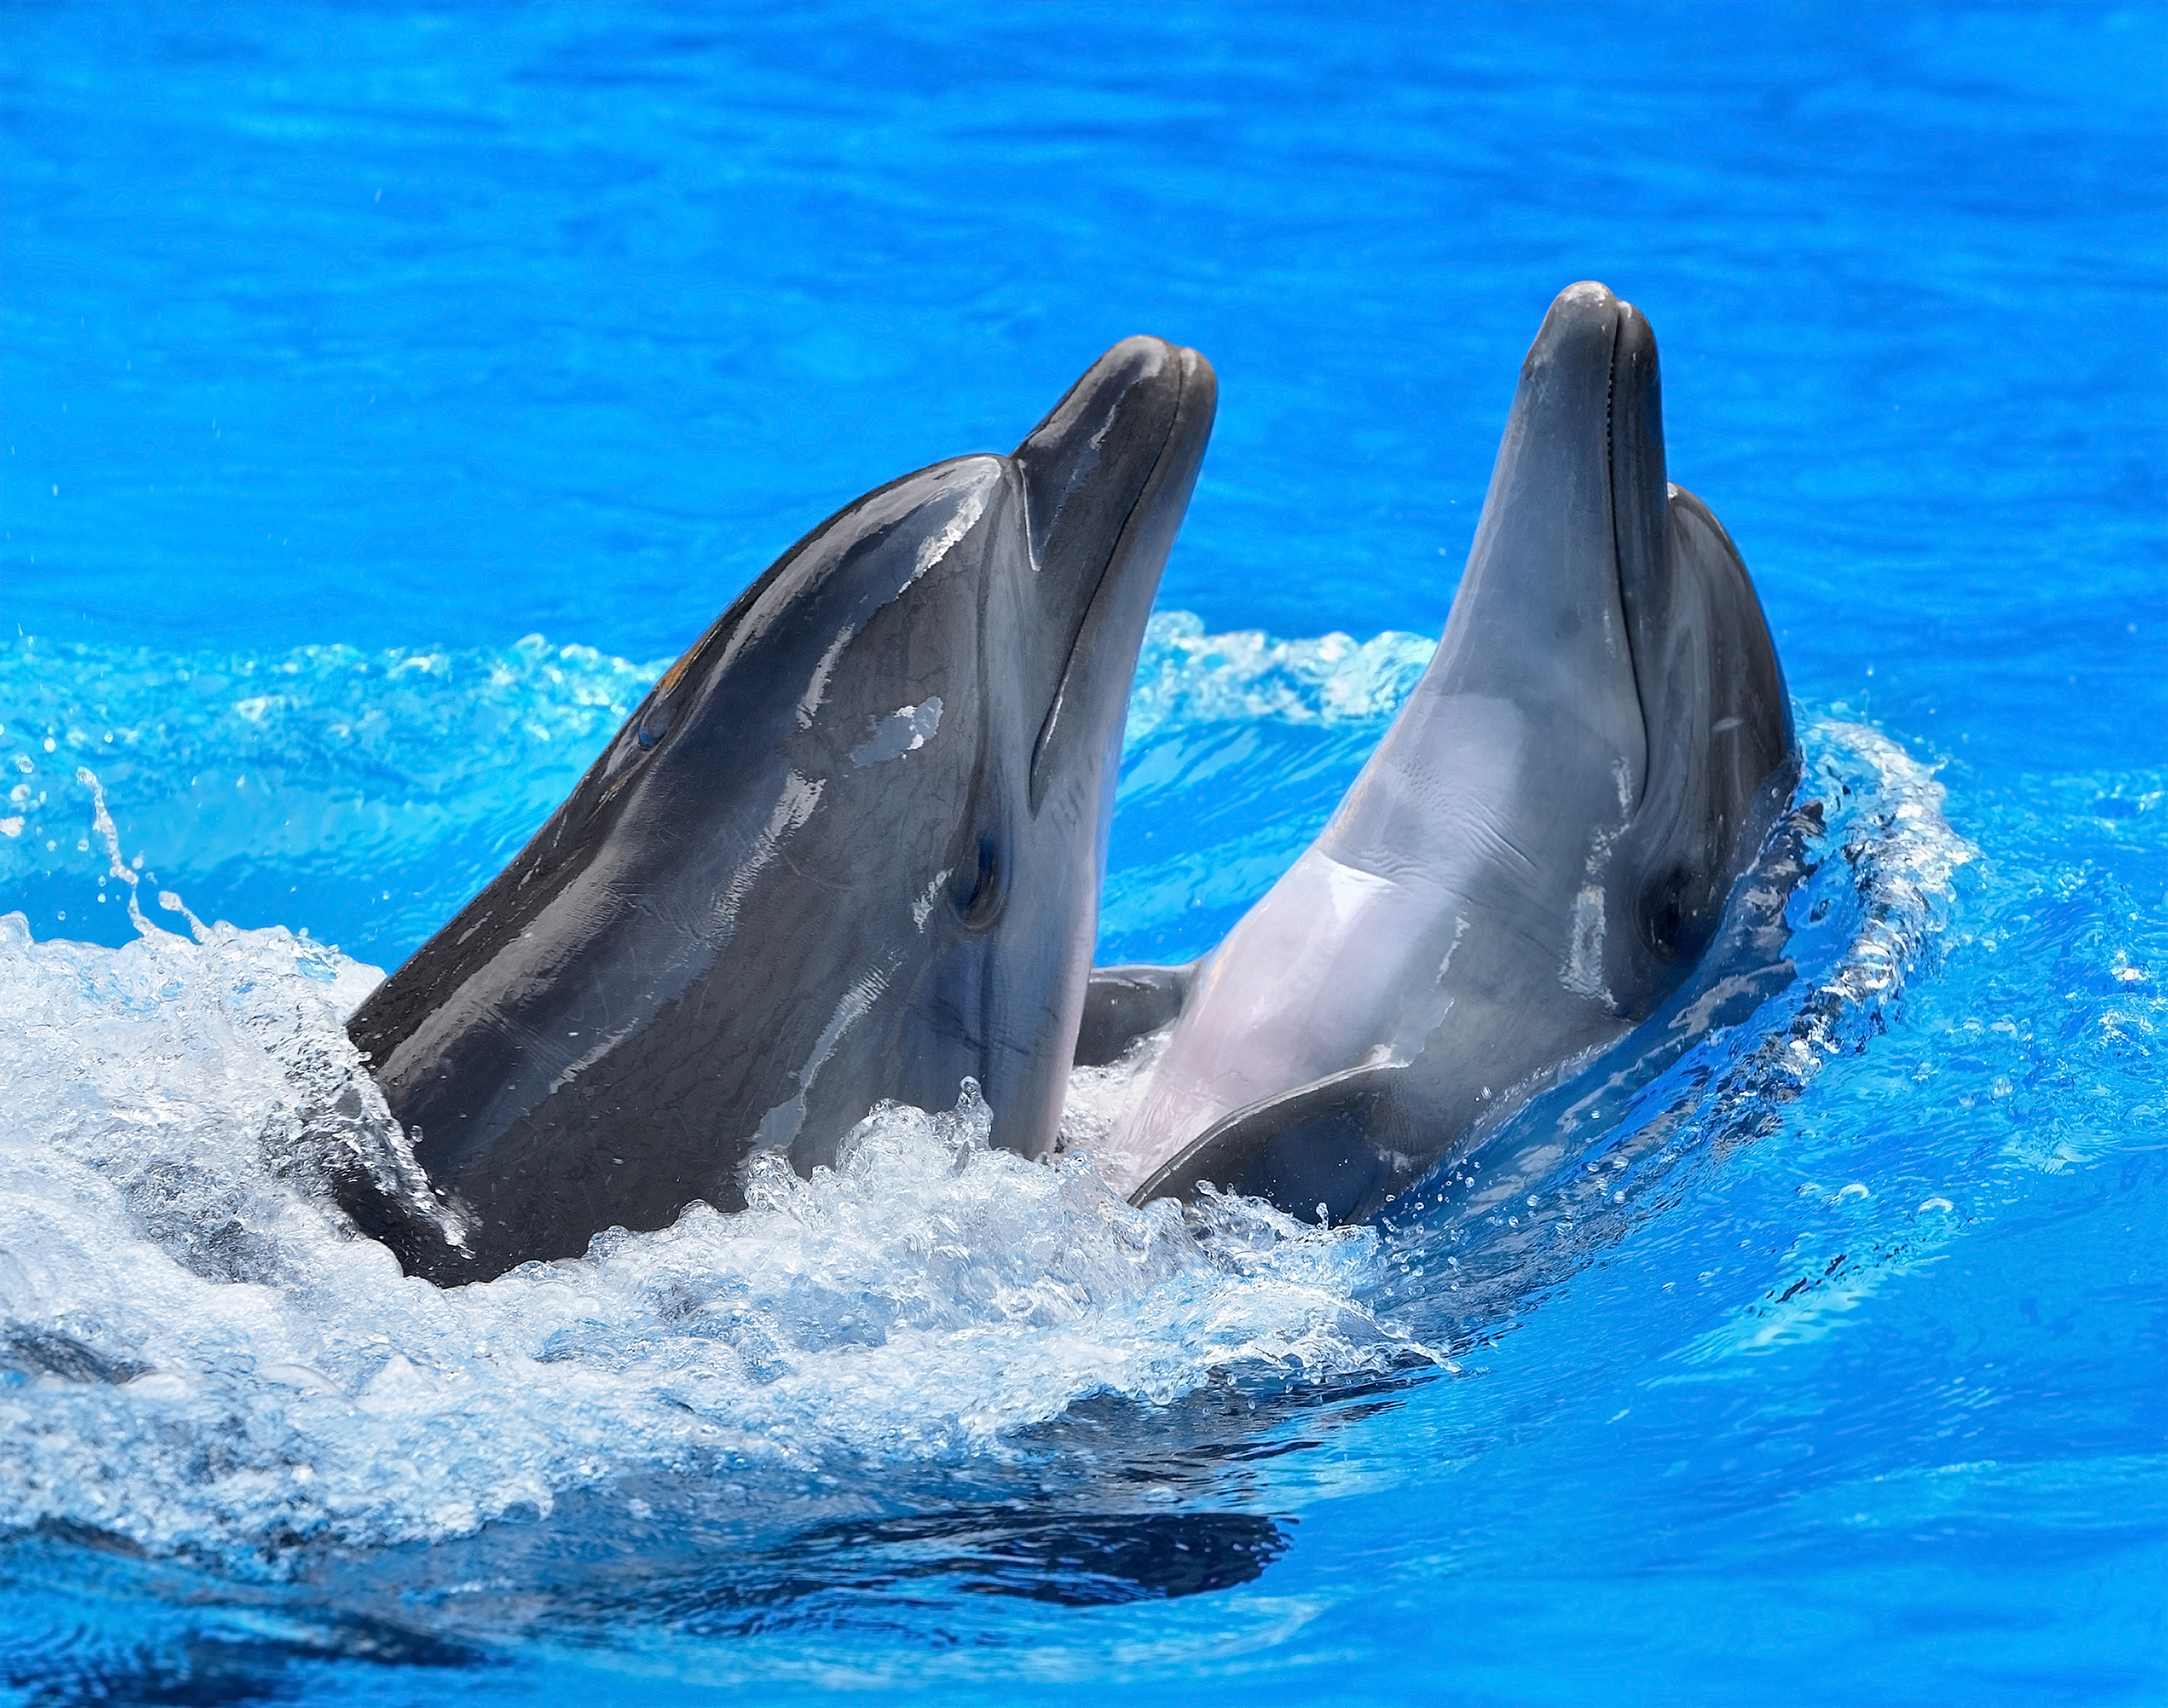 92932 download wallpaper Animals, Water, Dolfins, Couple, Pair, Spray screensavers and pictures for free